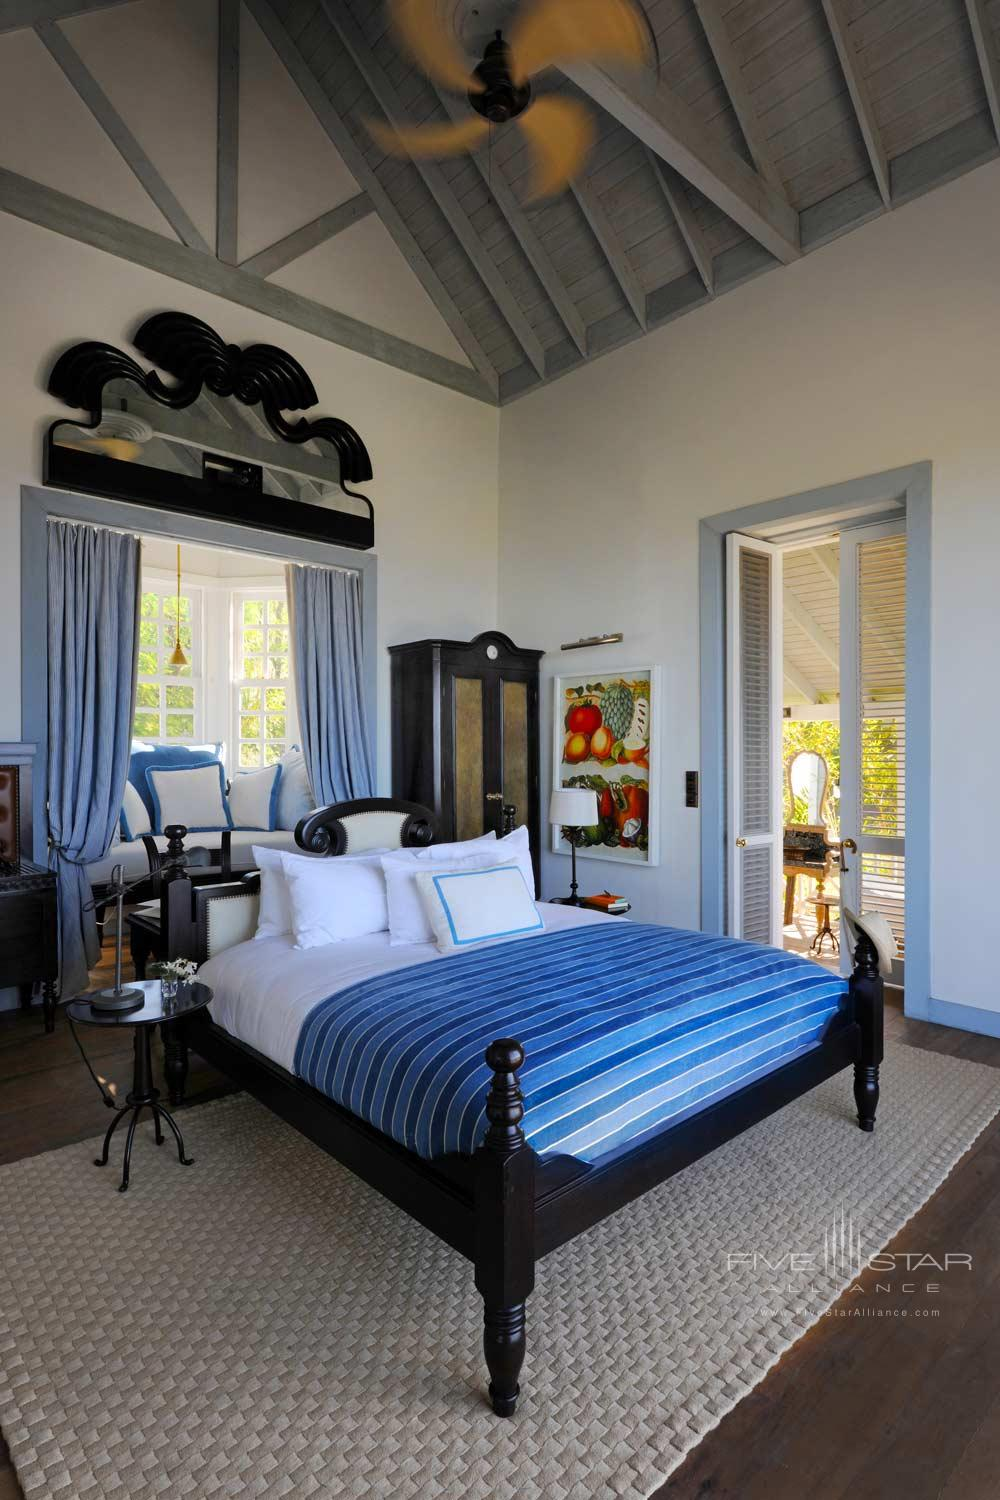 Guestroom At The Belle Mont Farm.